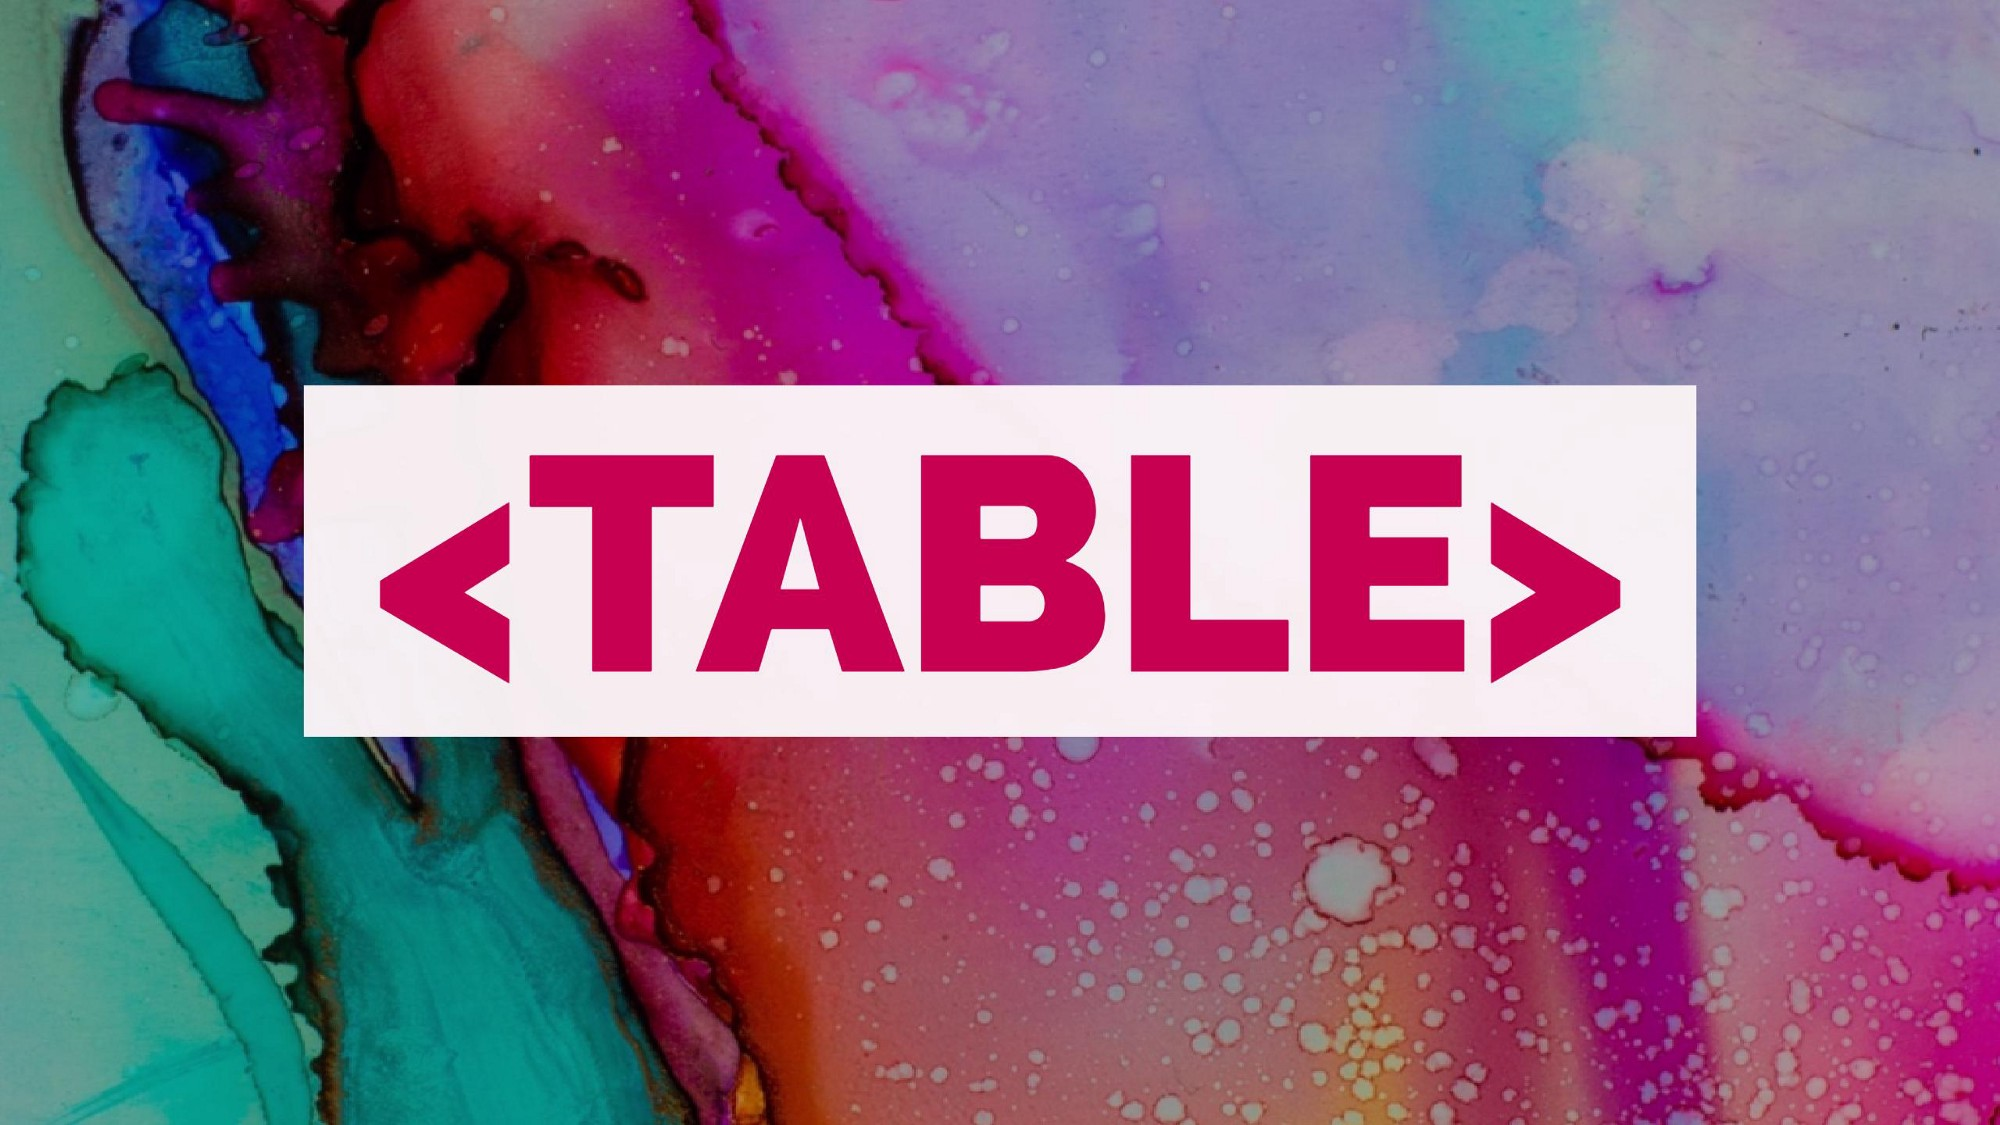 The <table> – Travis Horn